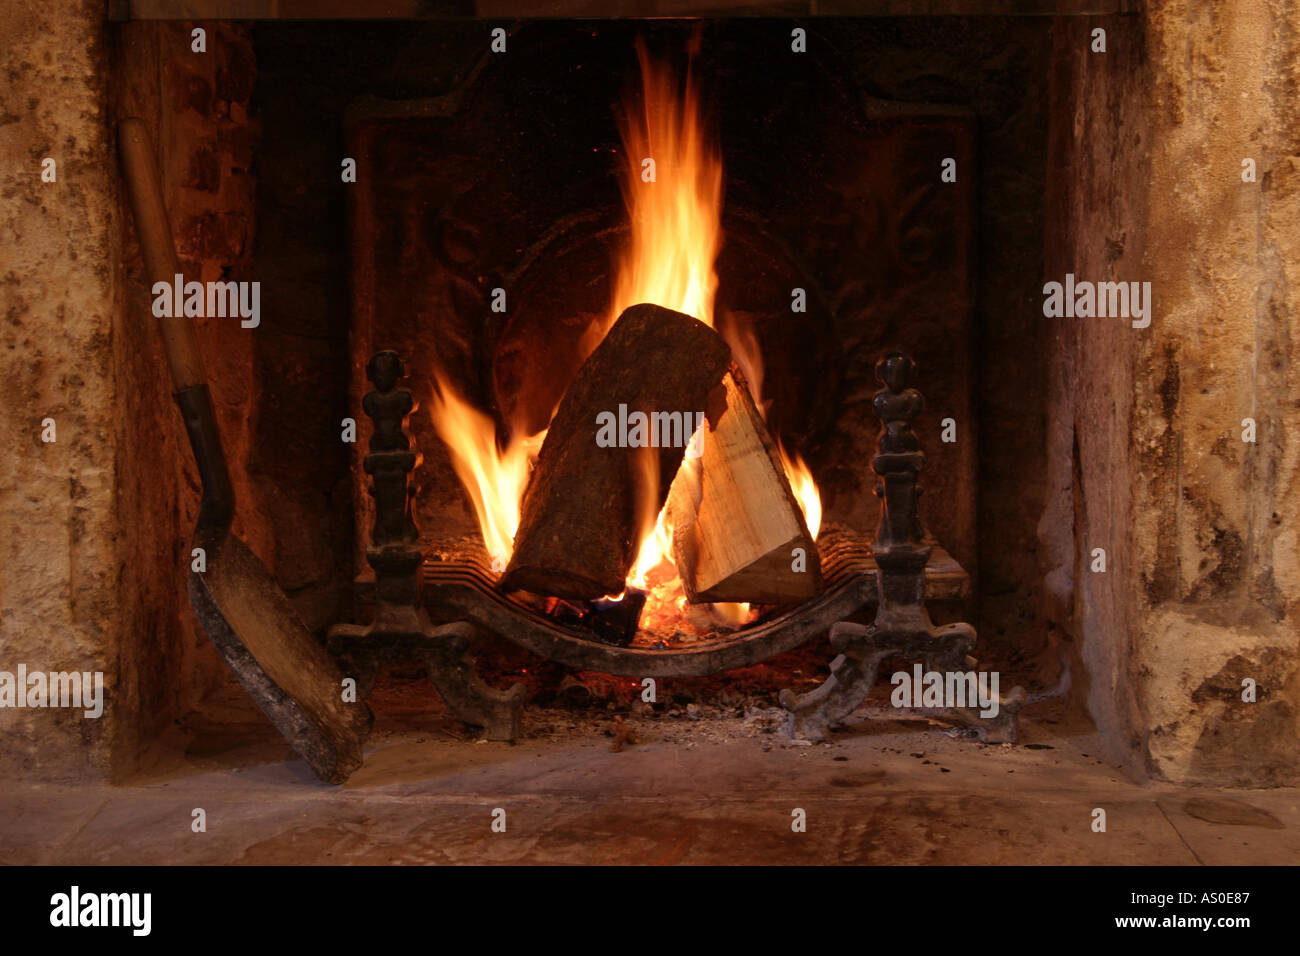 Le Feu De Chemin Cheminée En Anglais Roaring Fireplace Fire Photos Roaring Fireplace Fire Images Alamy